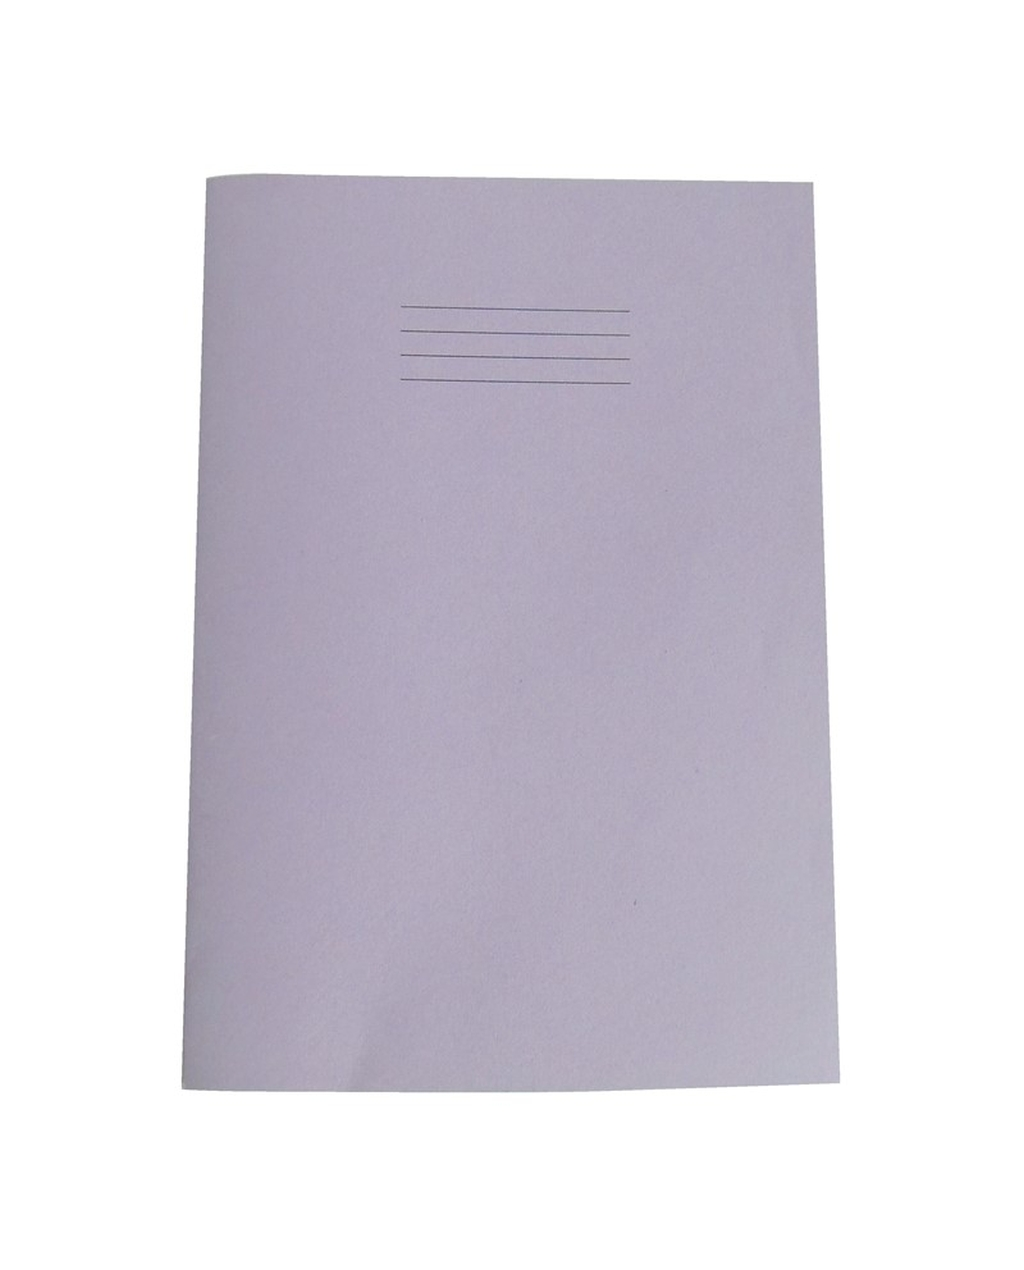 Exercise Book A4+ size (330 x 250mm) Purple Cover 12mm Ruled 40 Pages